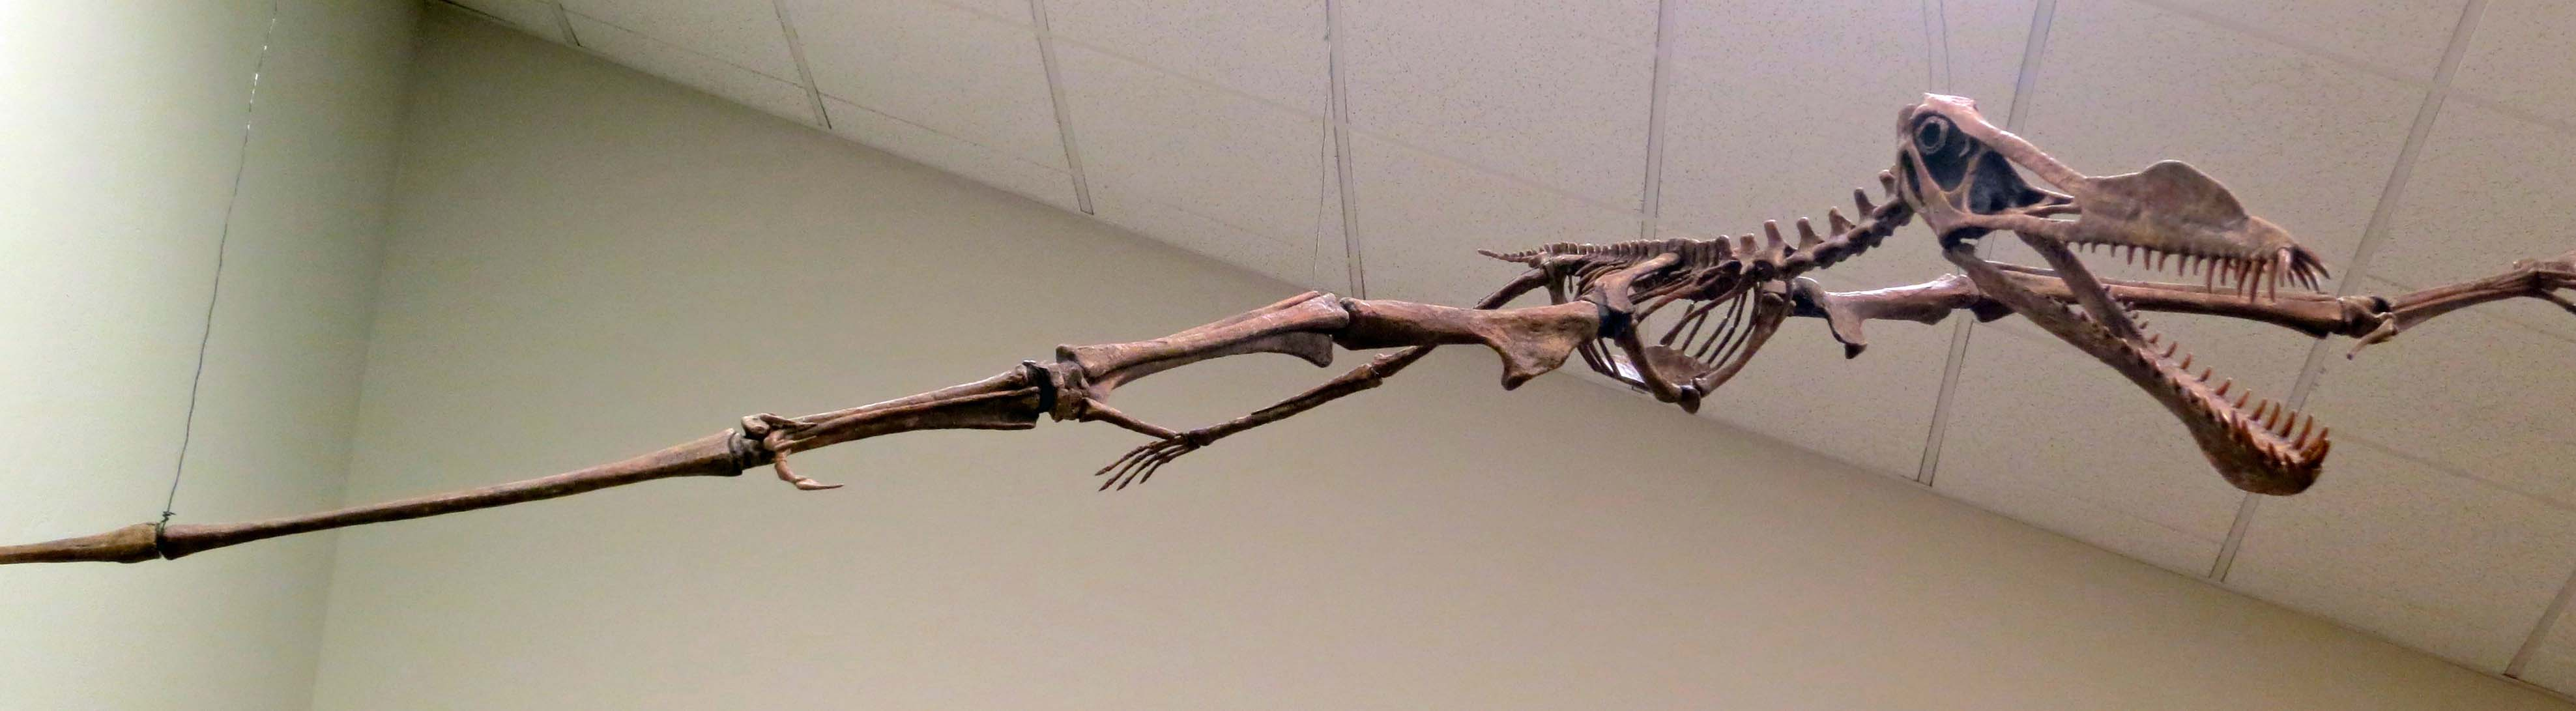 Pterry, a 60 million year old plus, pterosaur, swoops down from the ceiling of the Crater Rock Museum.